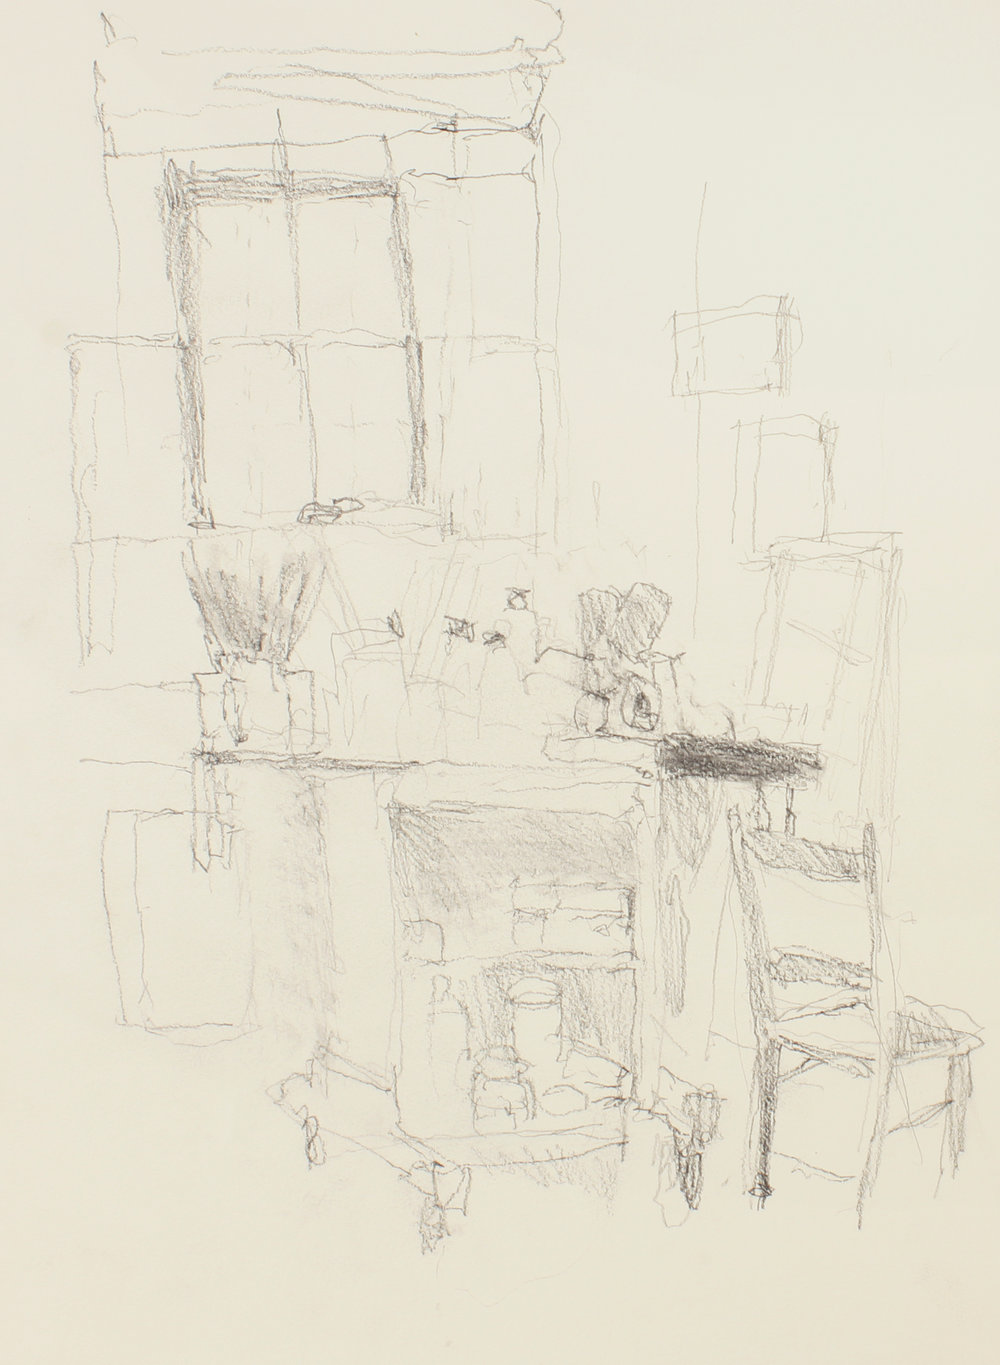 1990s_Studio_with_Table_Painting_Supplies_and_chair_pencil_on_paper_15x11in_WPF112.jpg